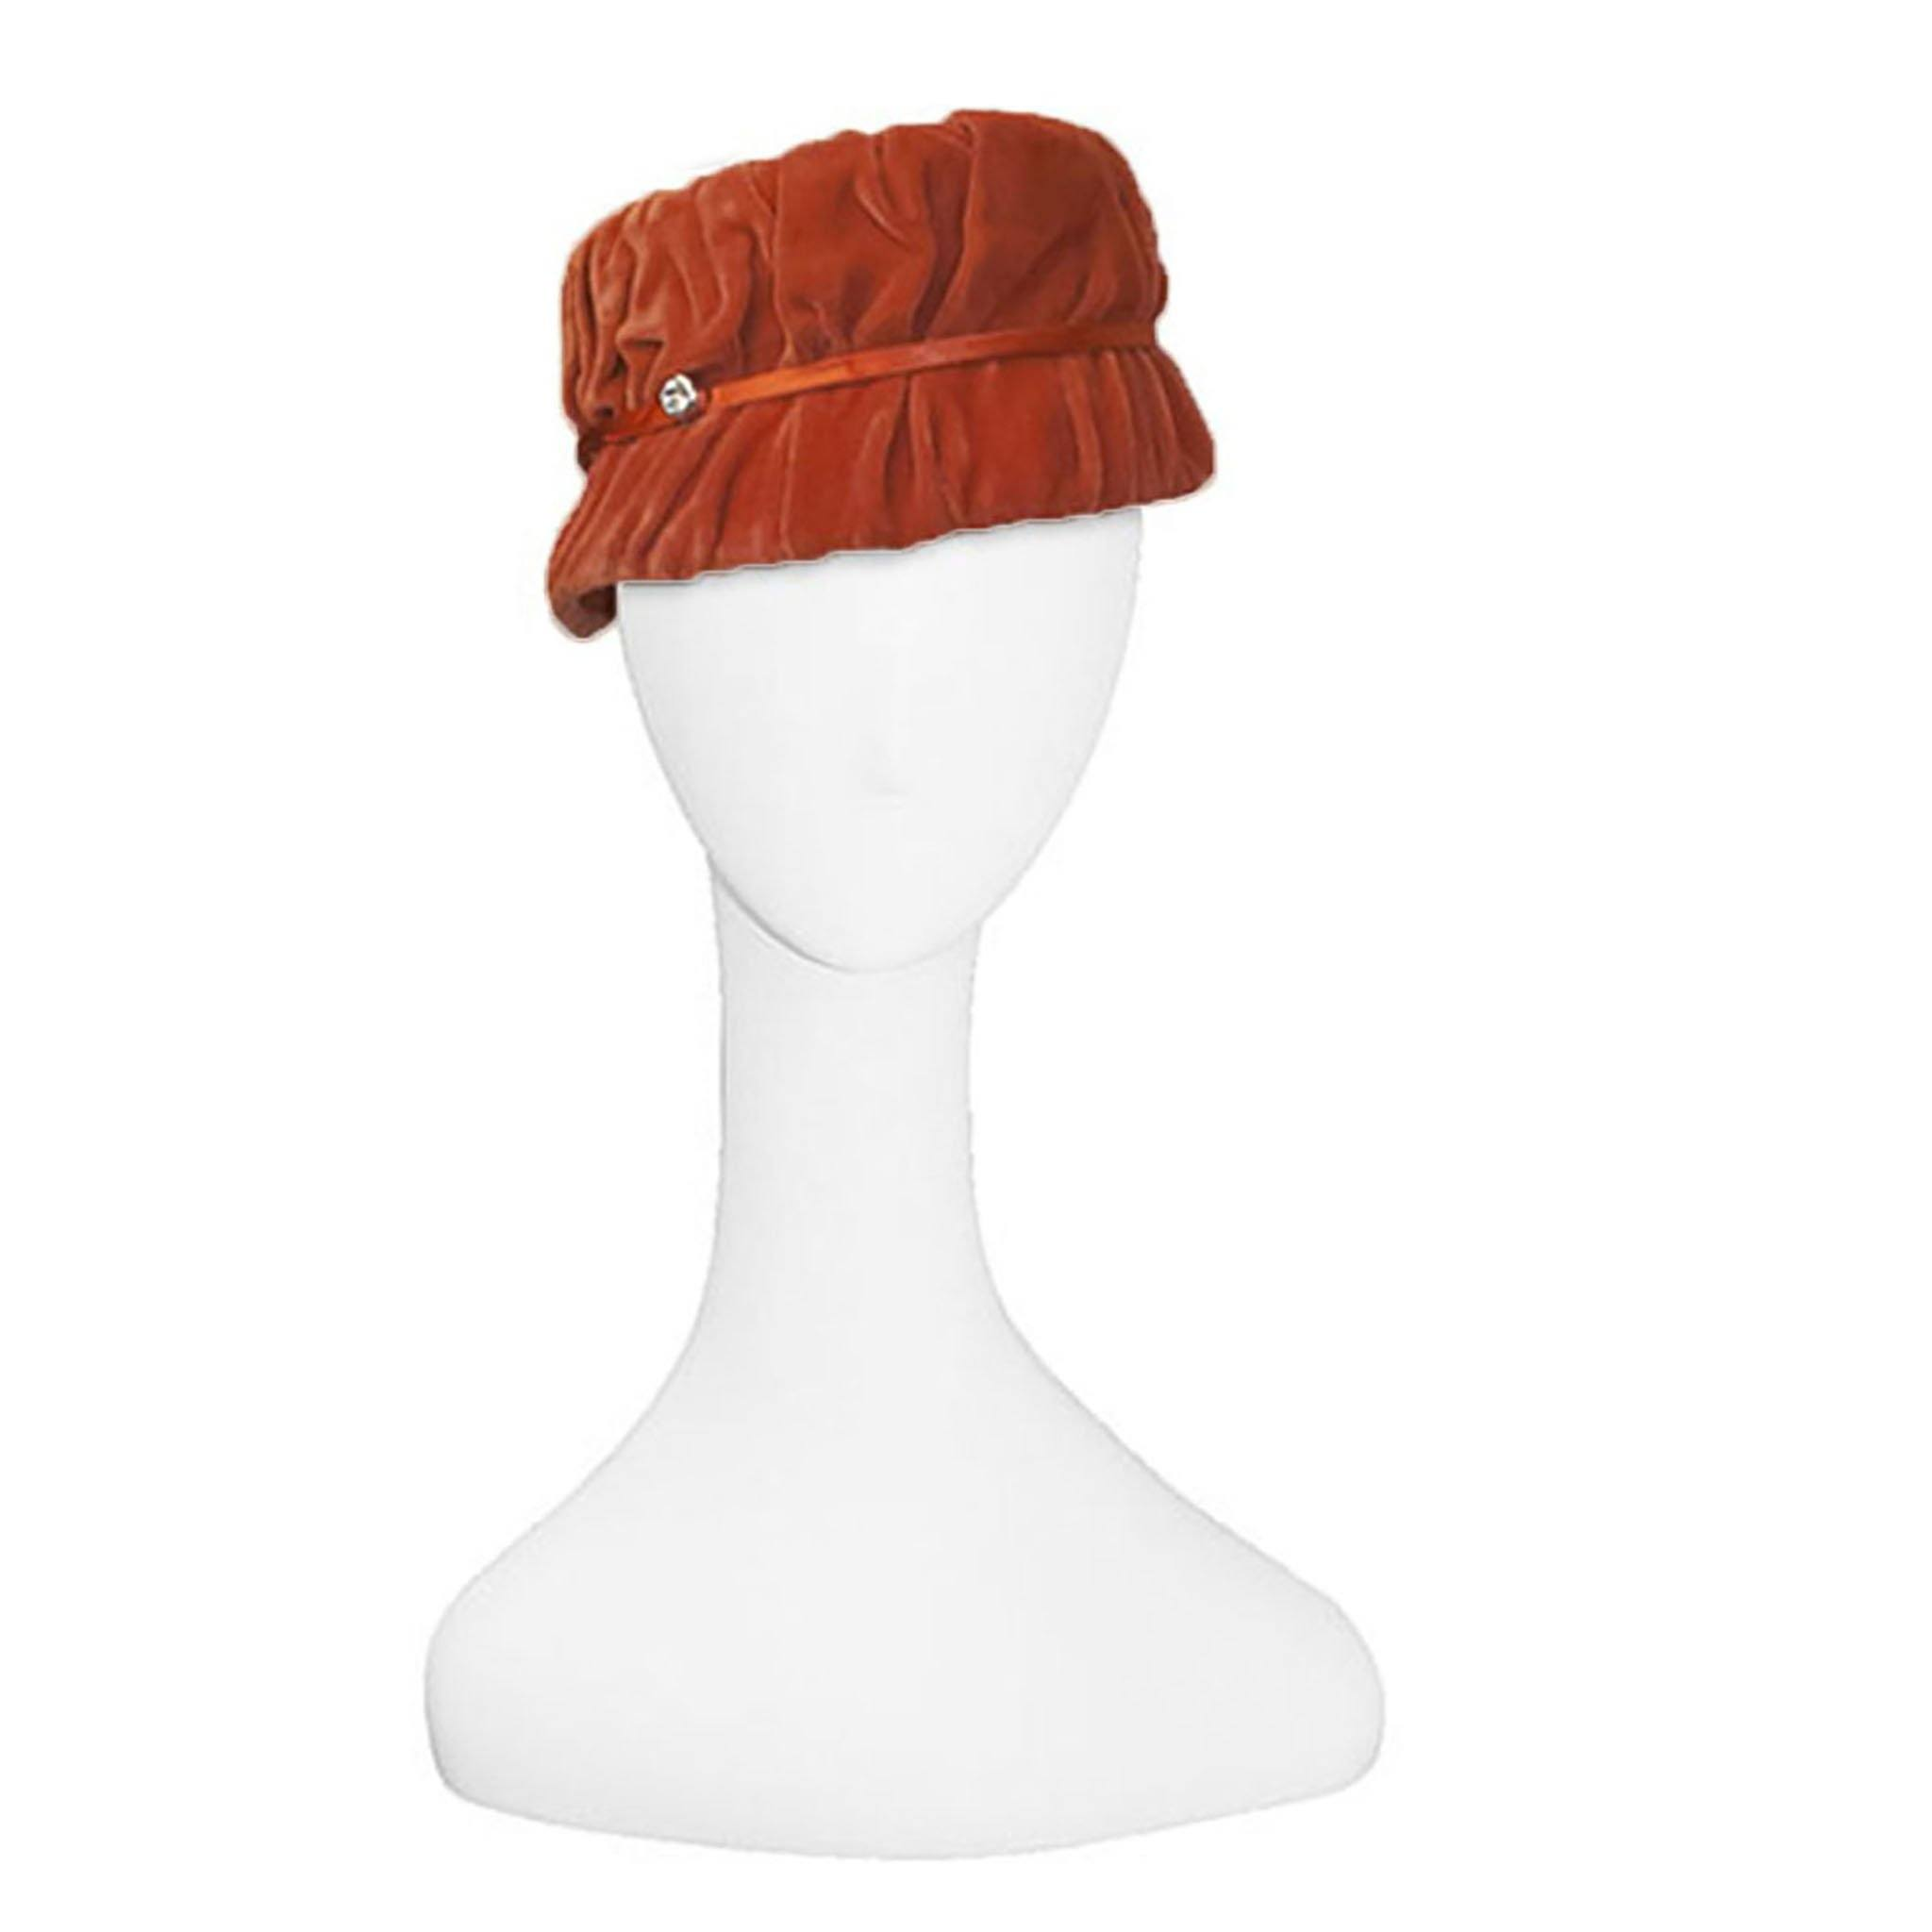 Vintage 1950s Orange Hat in Shirred Velvet, Rhinestone Trim